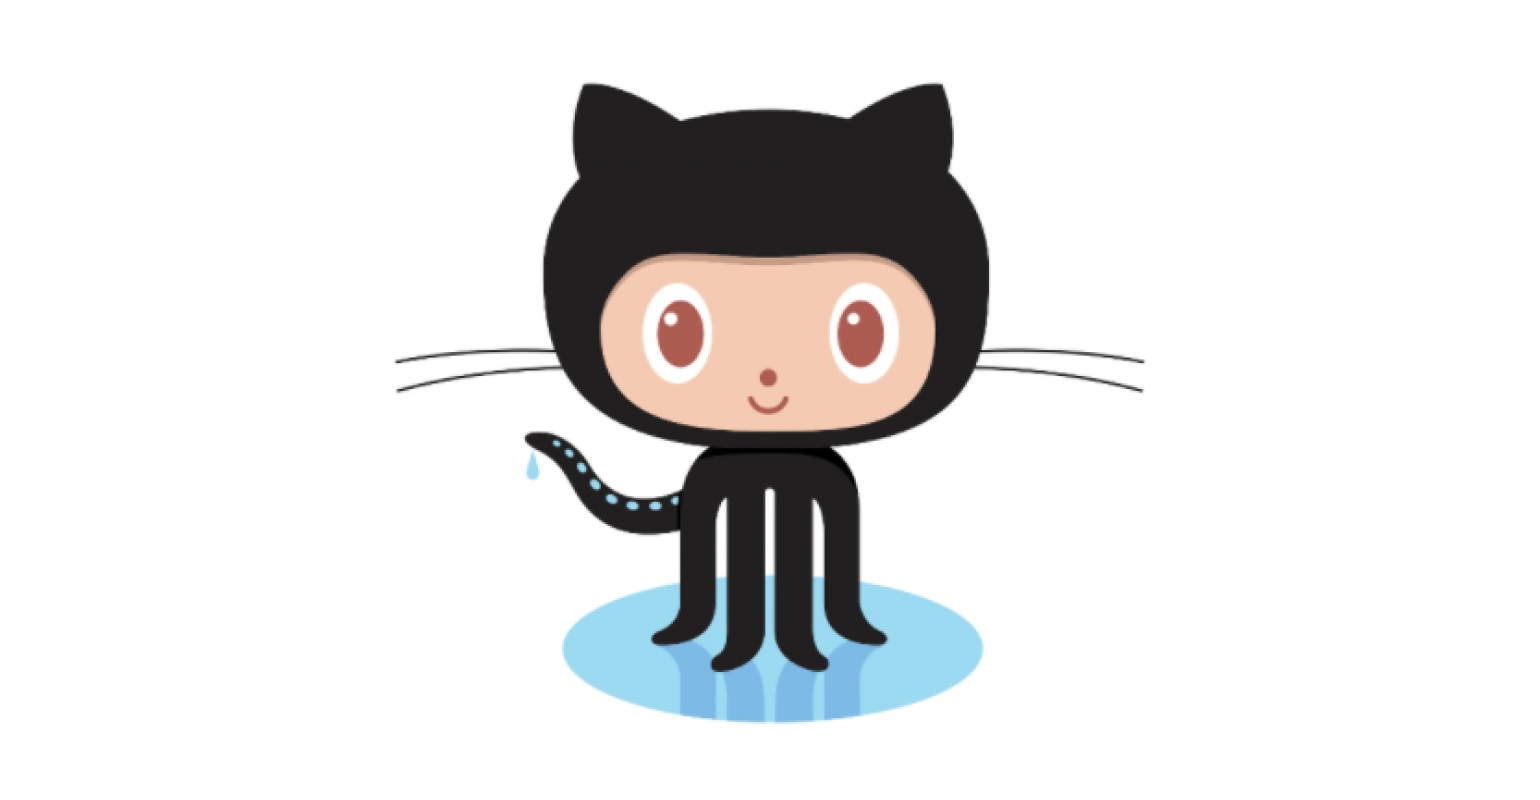 How do I download files from Github? | IT Pro